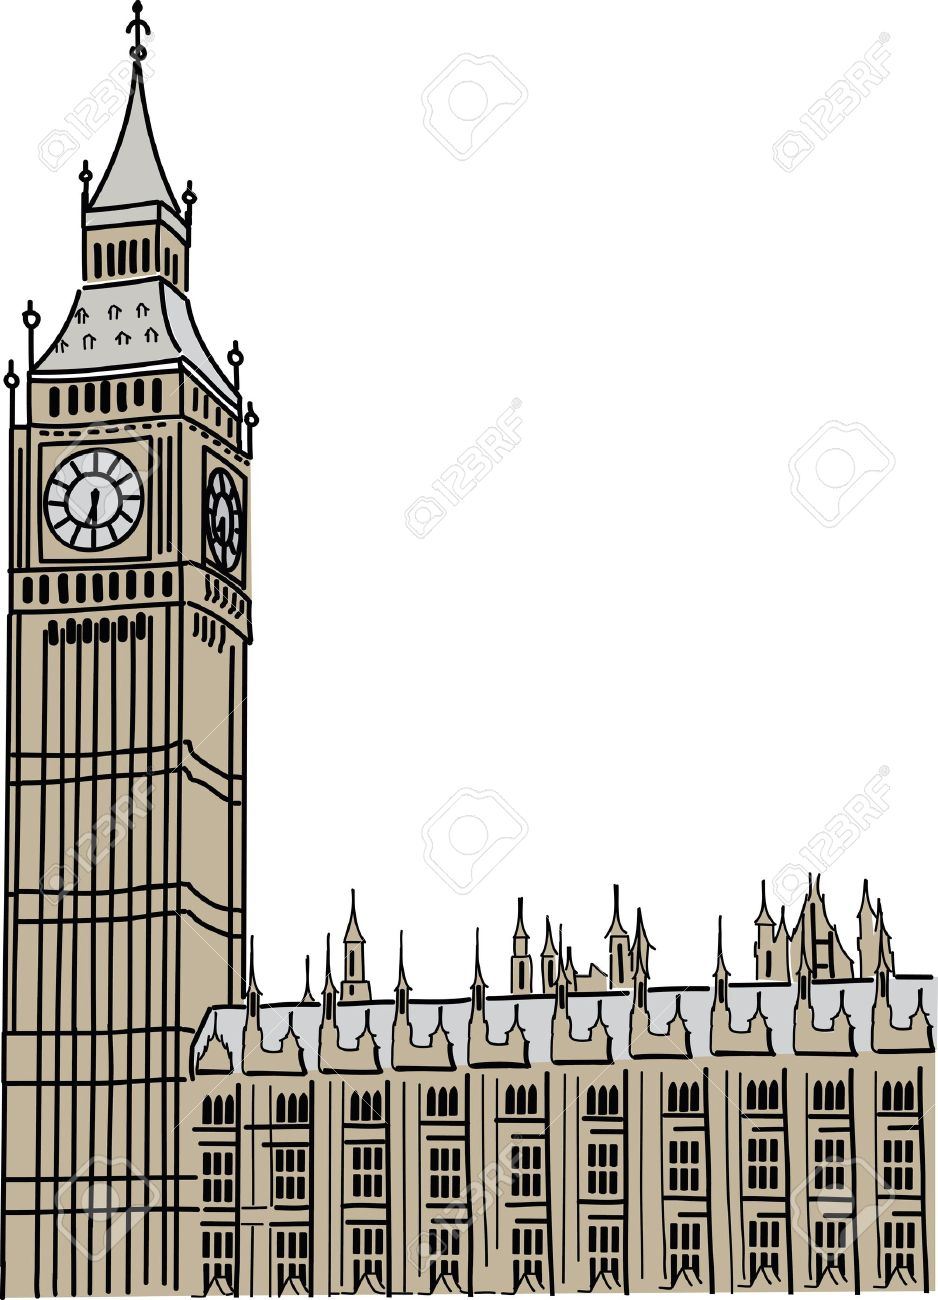 Big Ben clipart Ben Clock Clipart Big Others